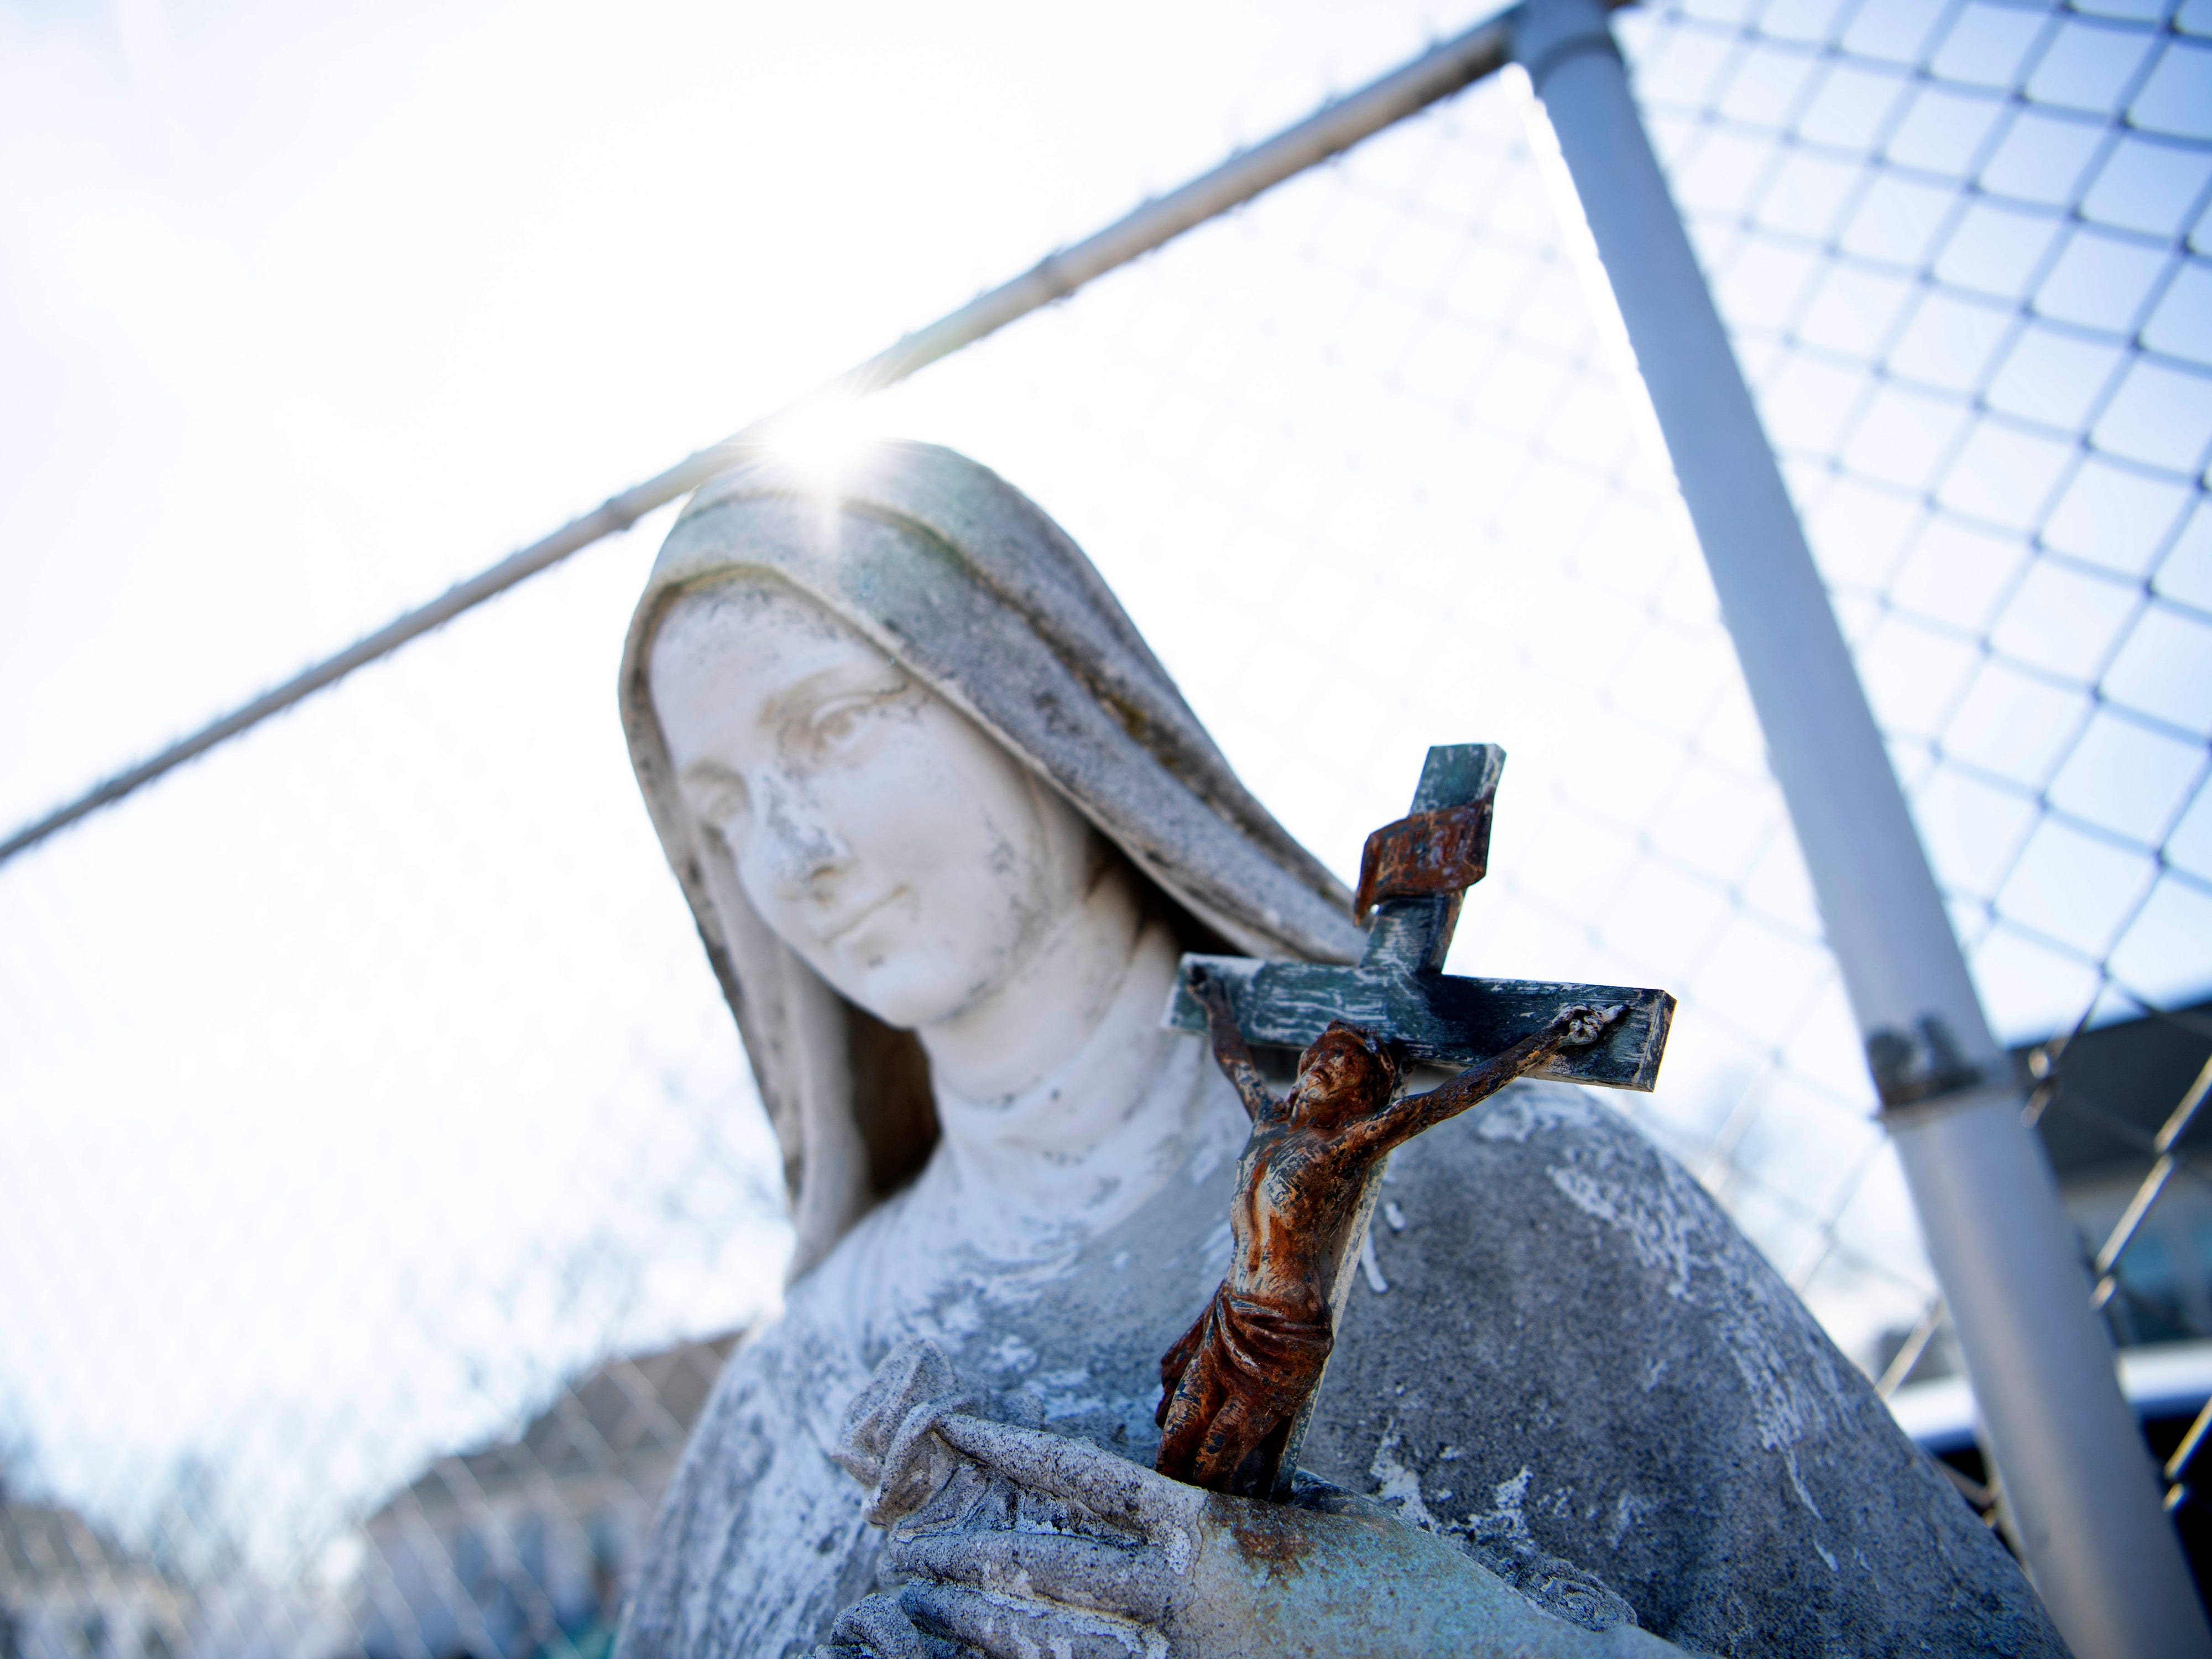 A statue of Saint Theresa holding a crucifix is tethered to a chain link fence for protection as St. Theresa Catholic School is demolished Monday morning.